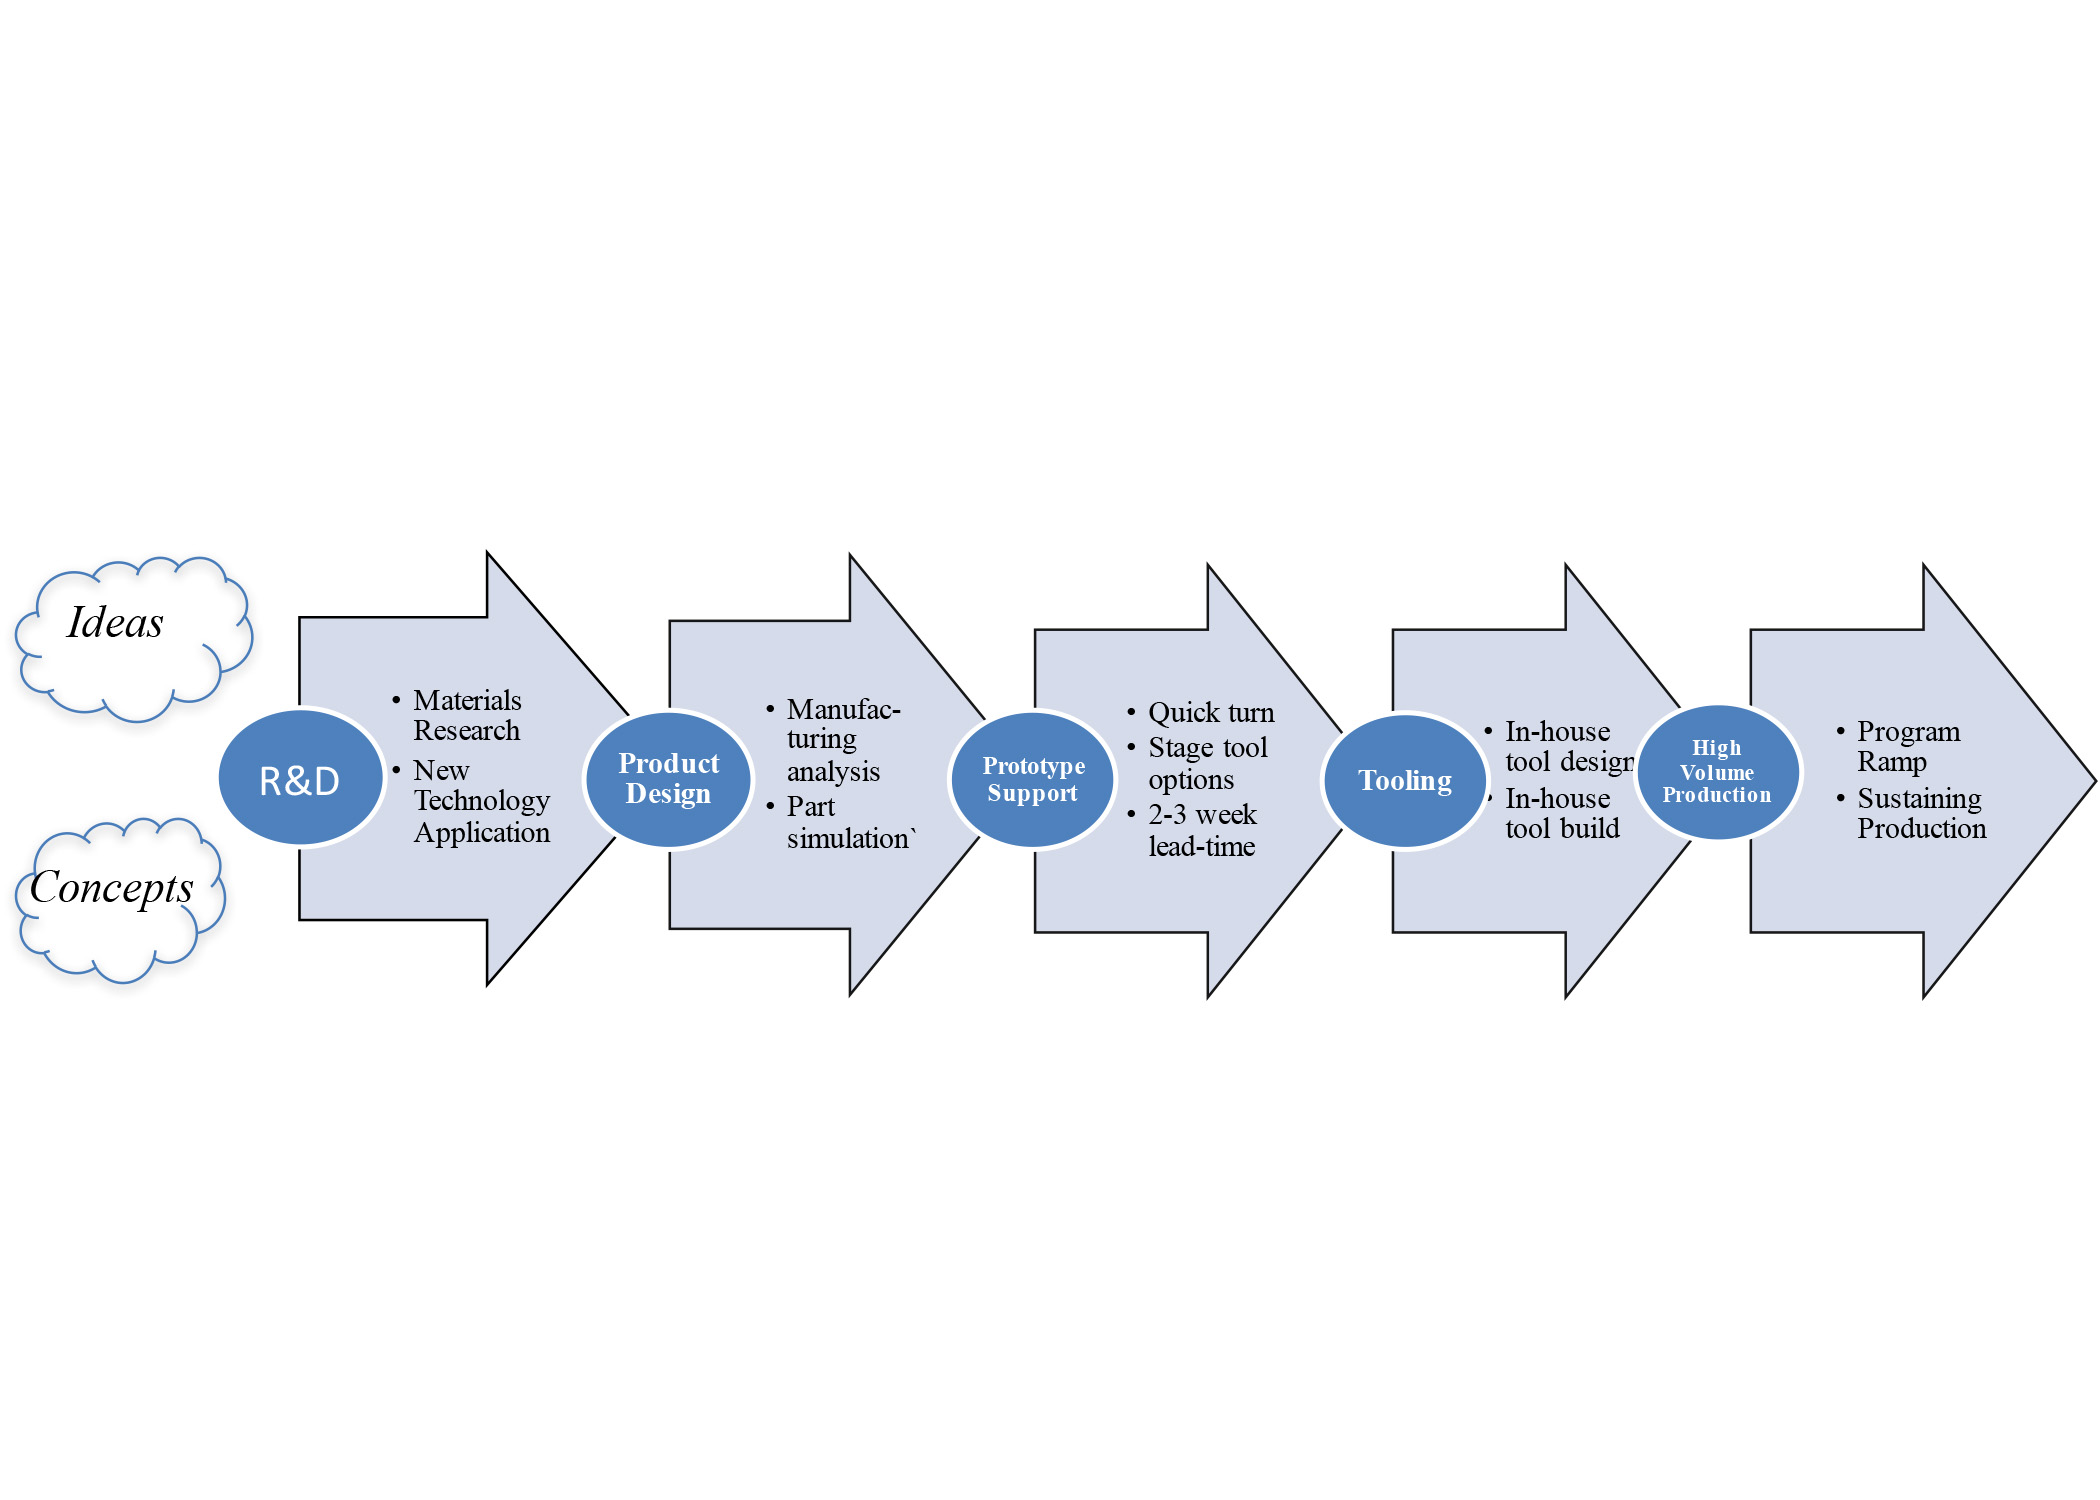 Development cycle of a custom-engineered product, from start to finish